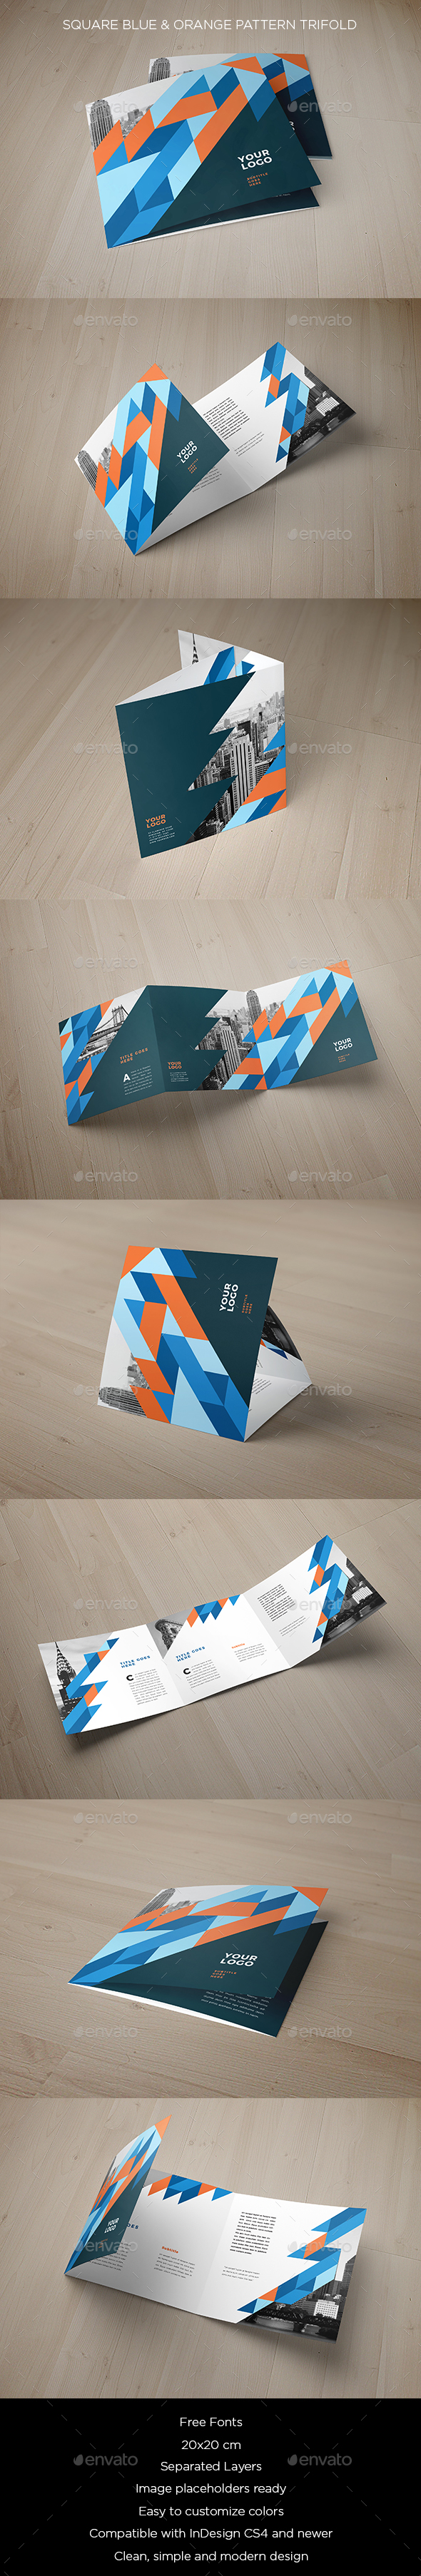 Square Blue & Orange Pattern Trifold - Brochures Print Templates